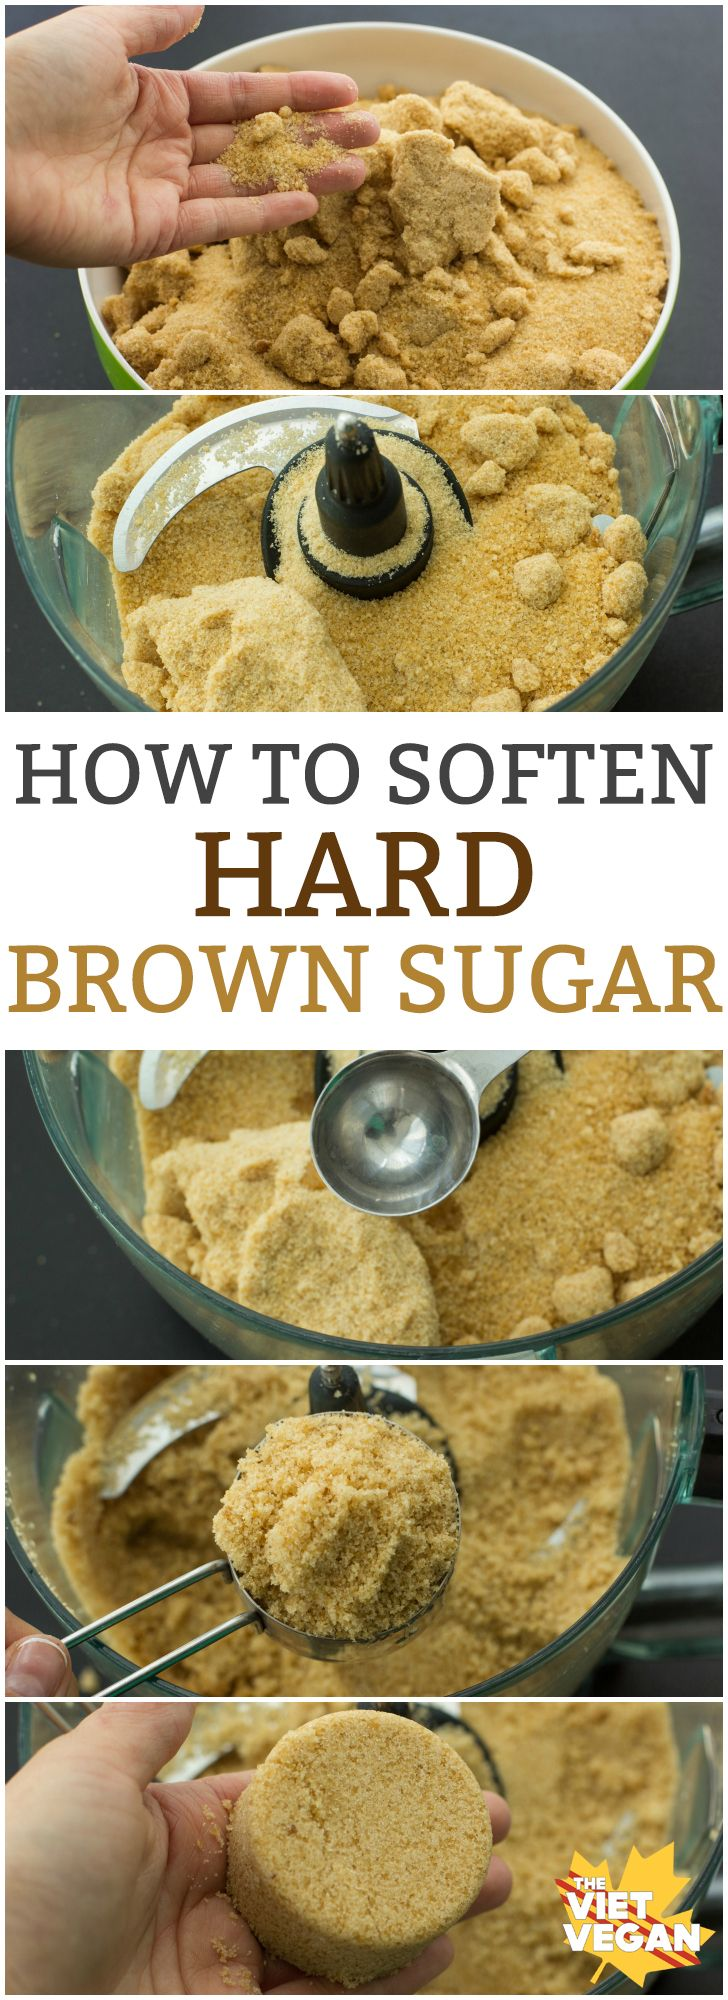 How to Soften Hard Brown Sugar   The Viet Vegan   All you need is 5 minutes and a food processor!